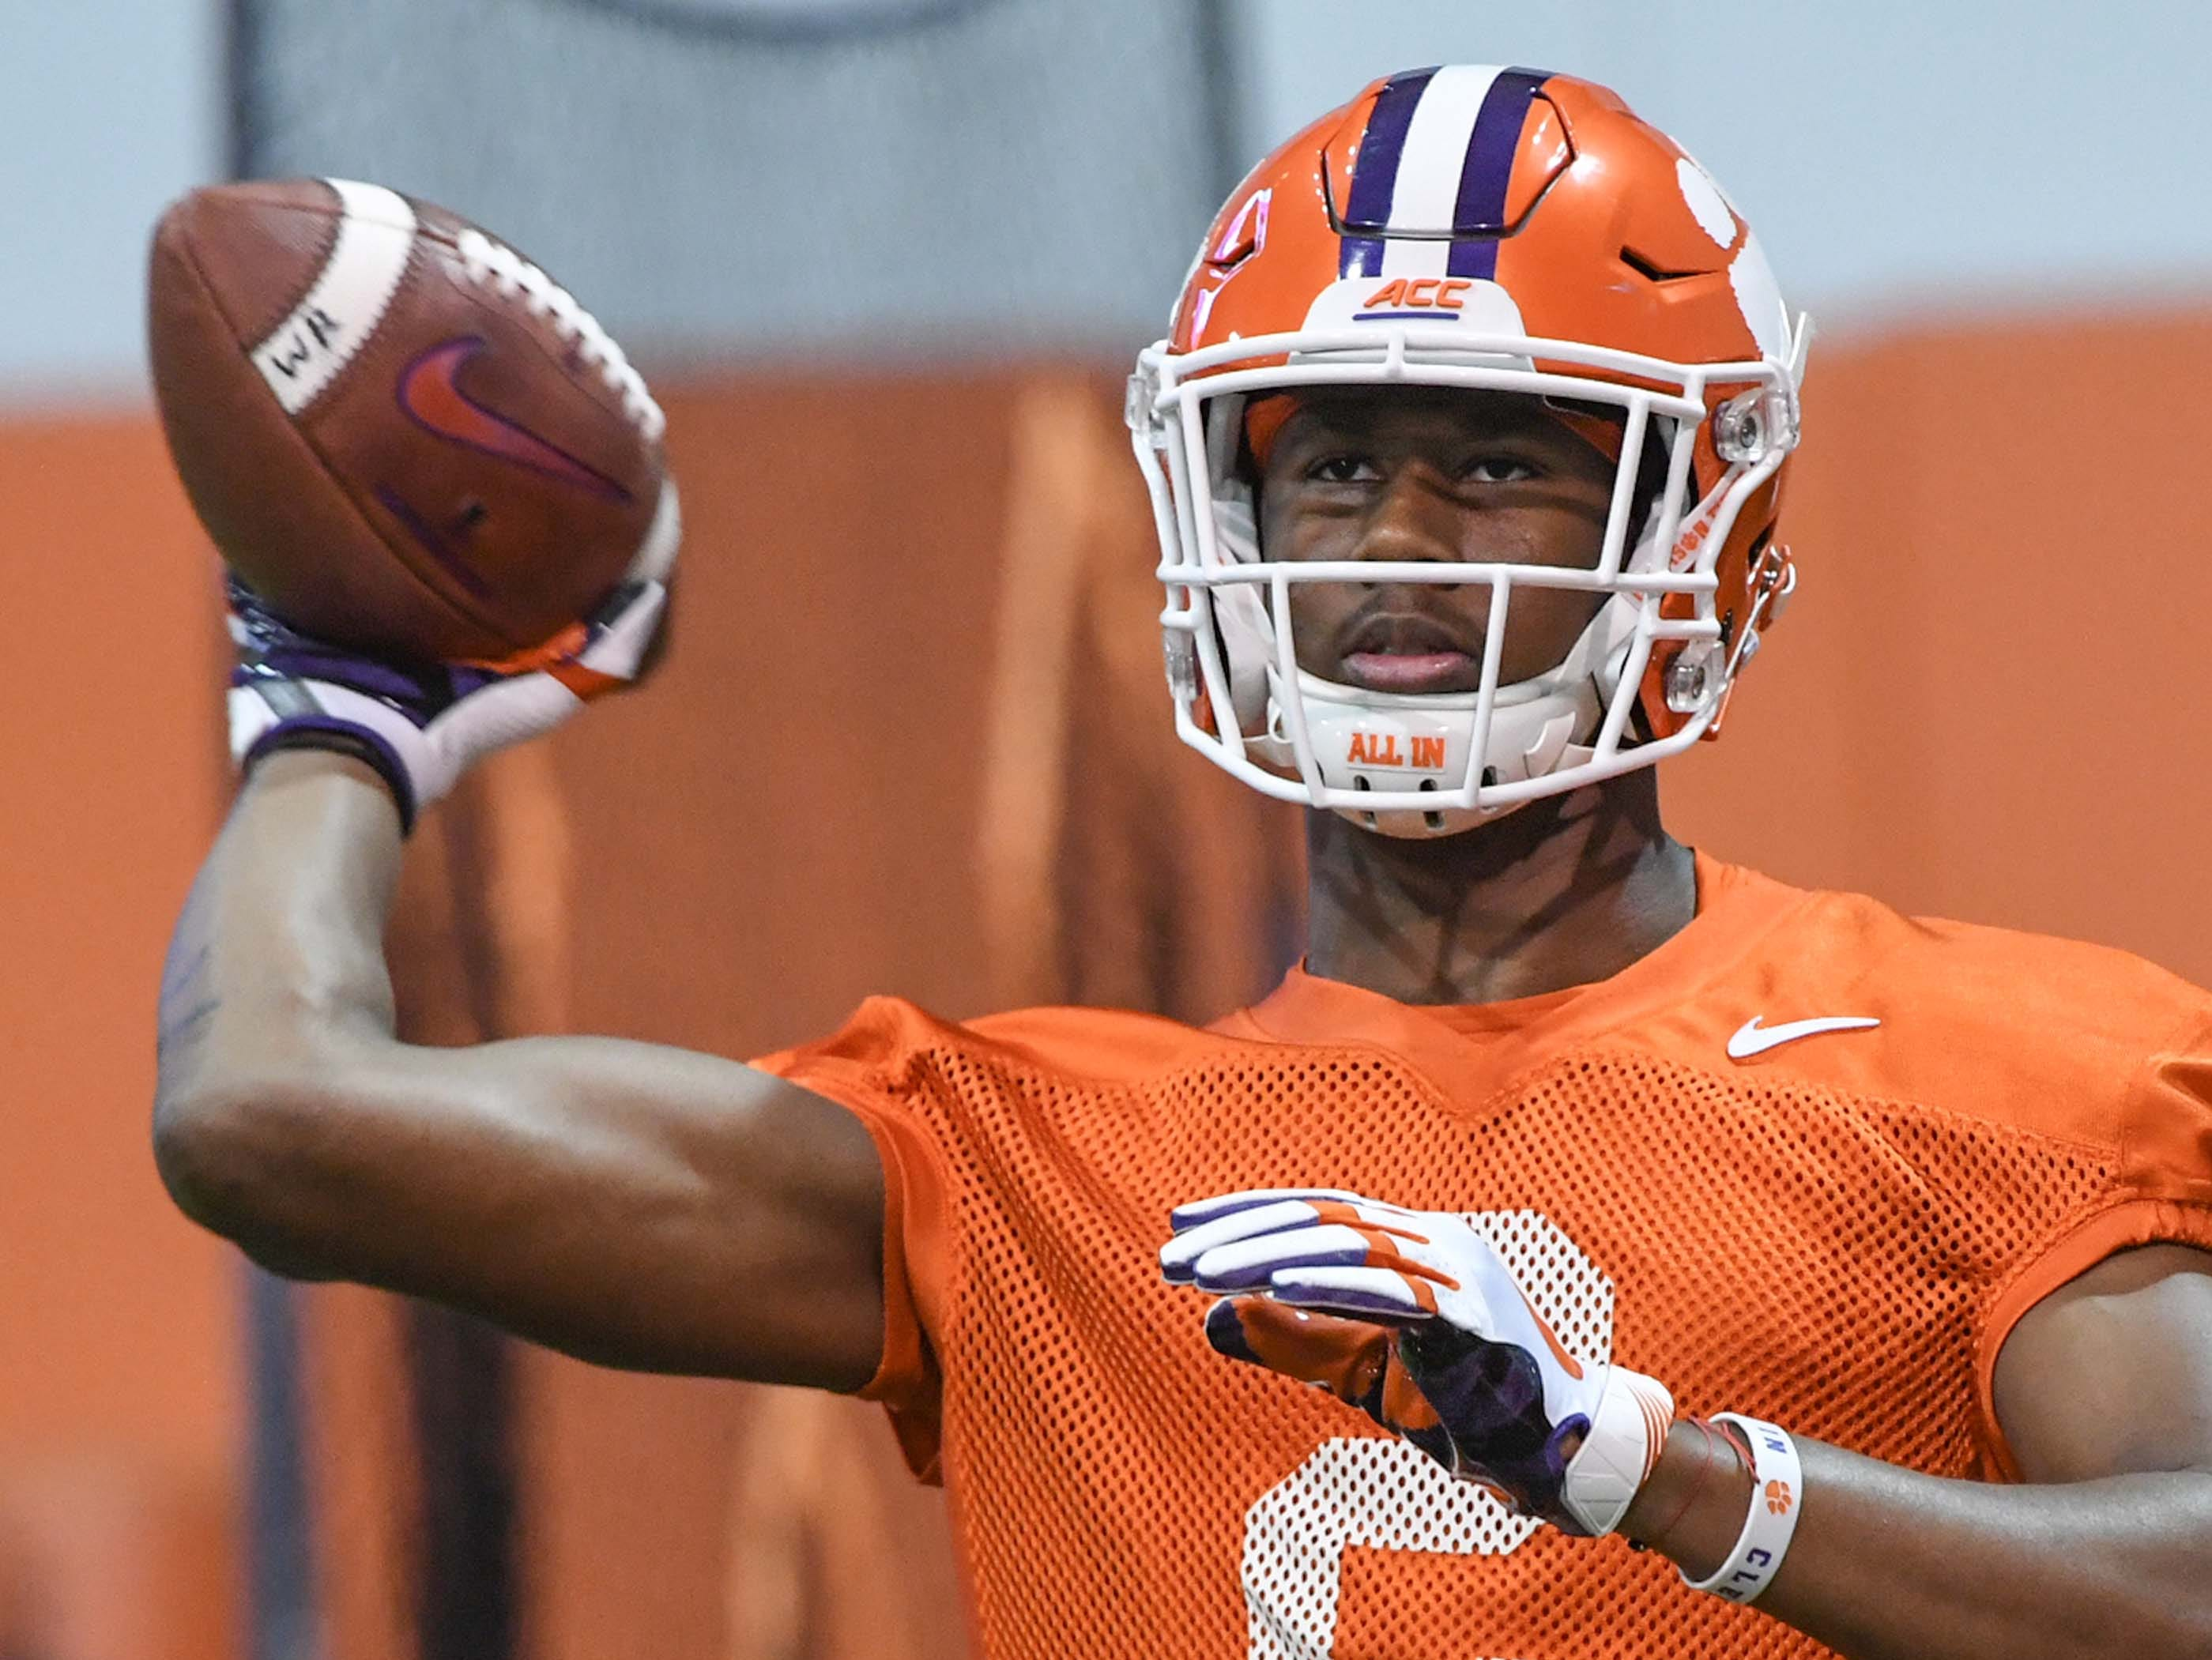 Clemson wide receiver Frank Ladson, Jr. (2) throws a ball during practice at the Poe Indoor Facility in Clemson Friday.